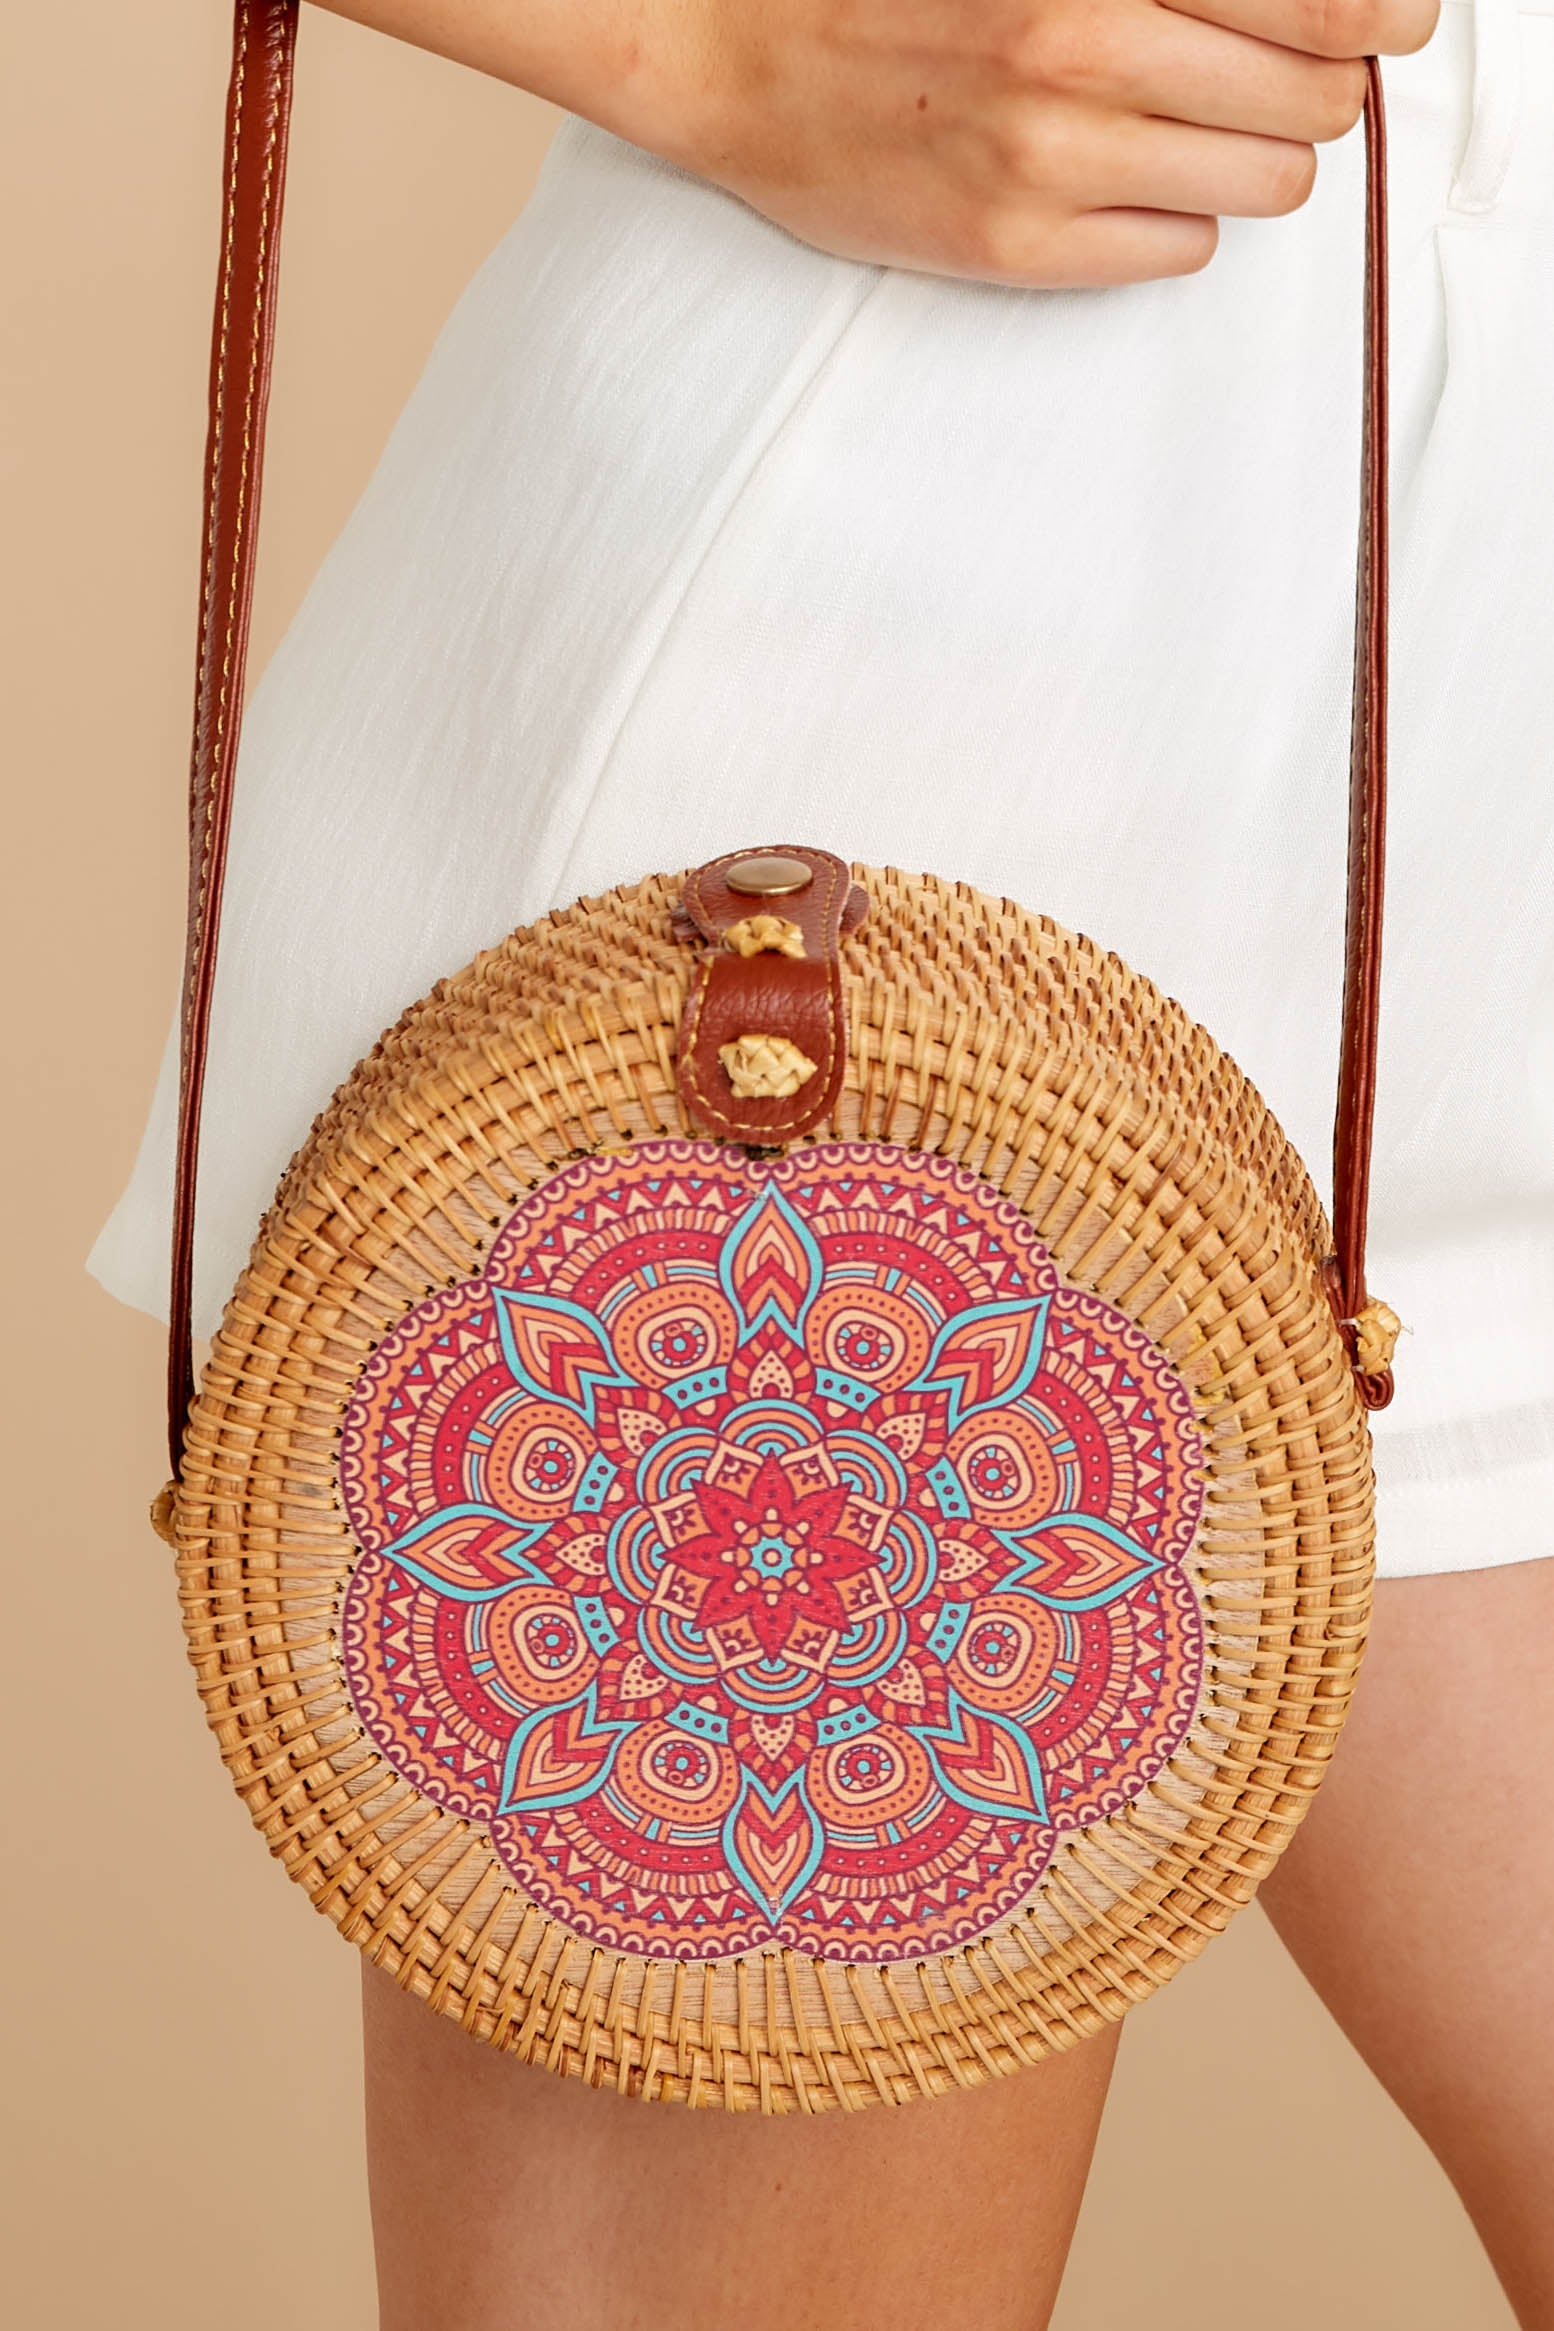 1 A Little Charmed Pink Printed Tan Round Bag at reddressboutique.com